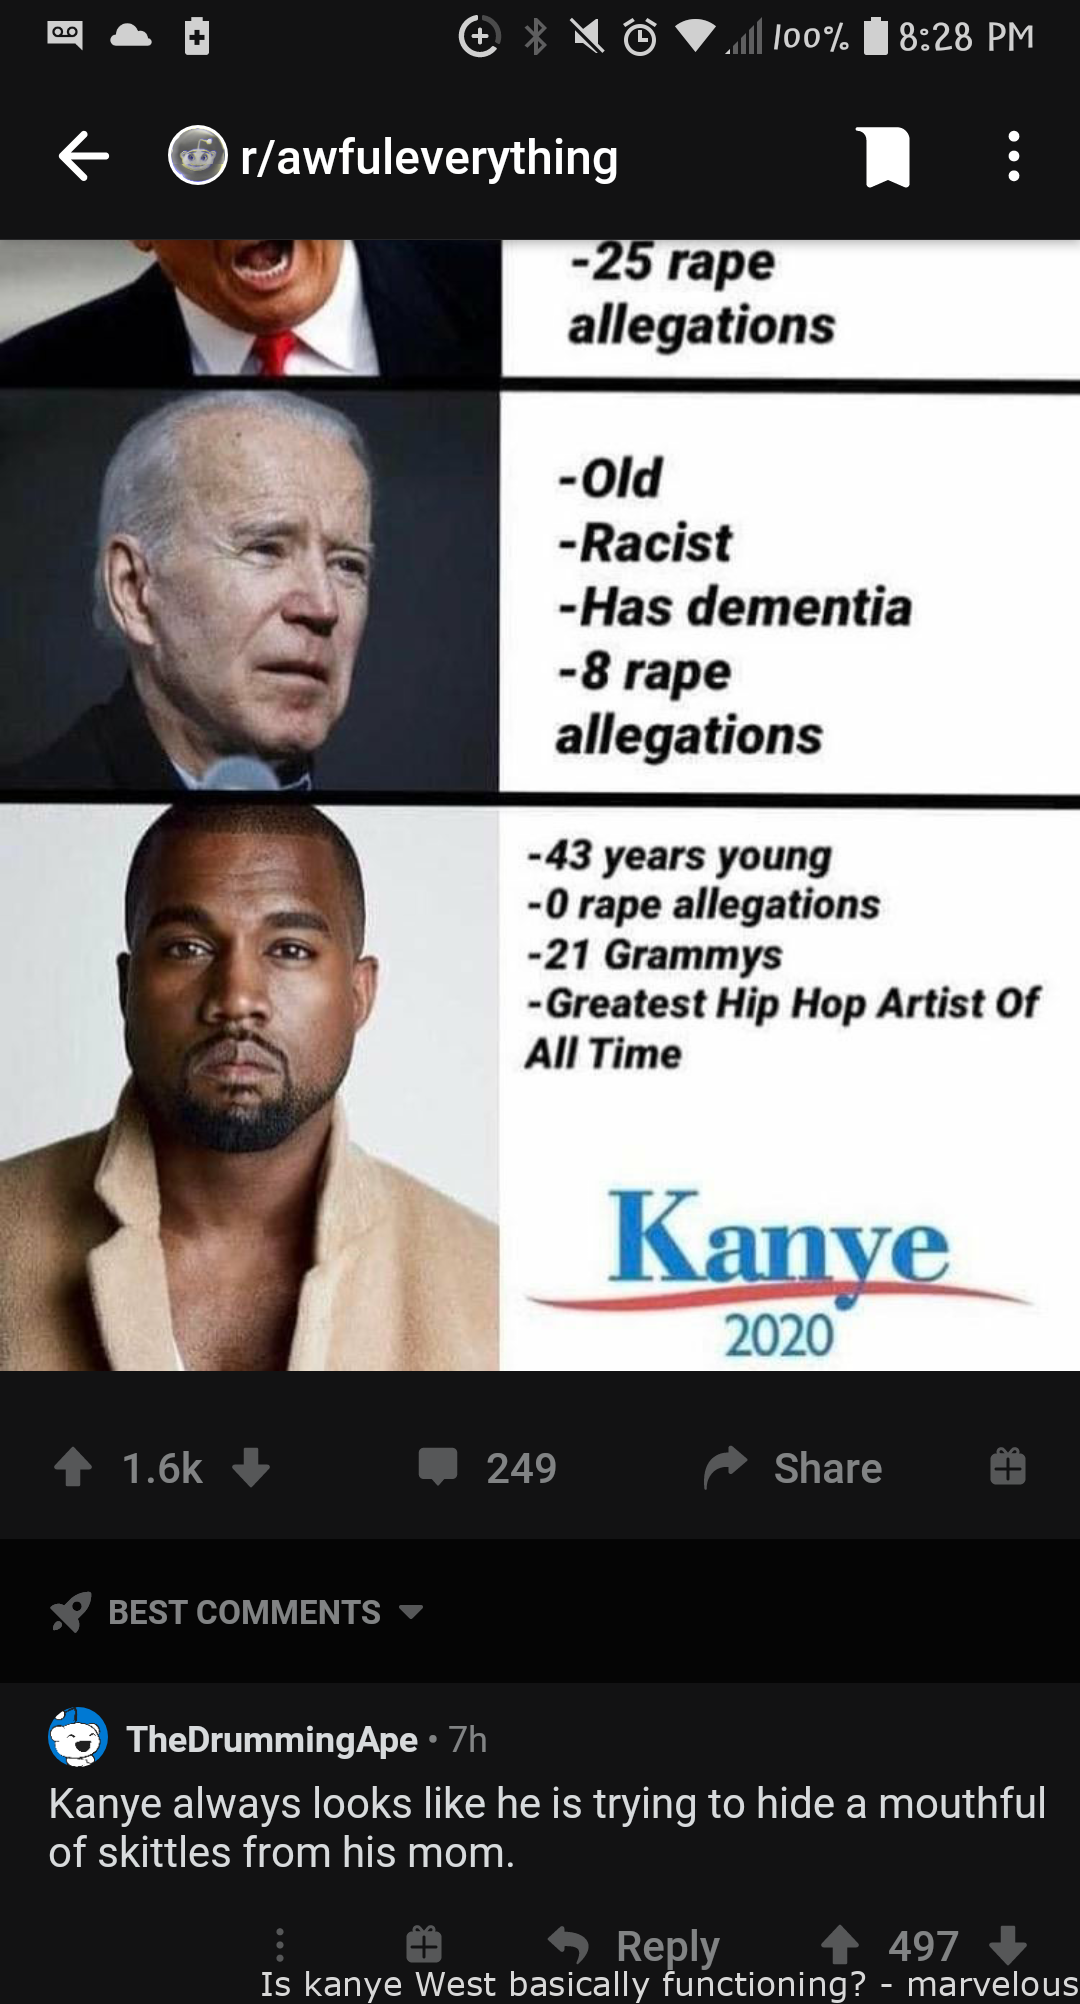 Is Kanye West Basically Functioning Marvelous Mockery In 2020 Funny Insults Funny Inspirational Quotes Funny Quotes